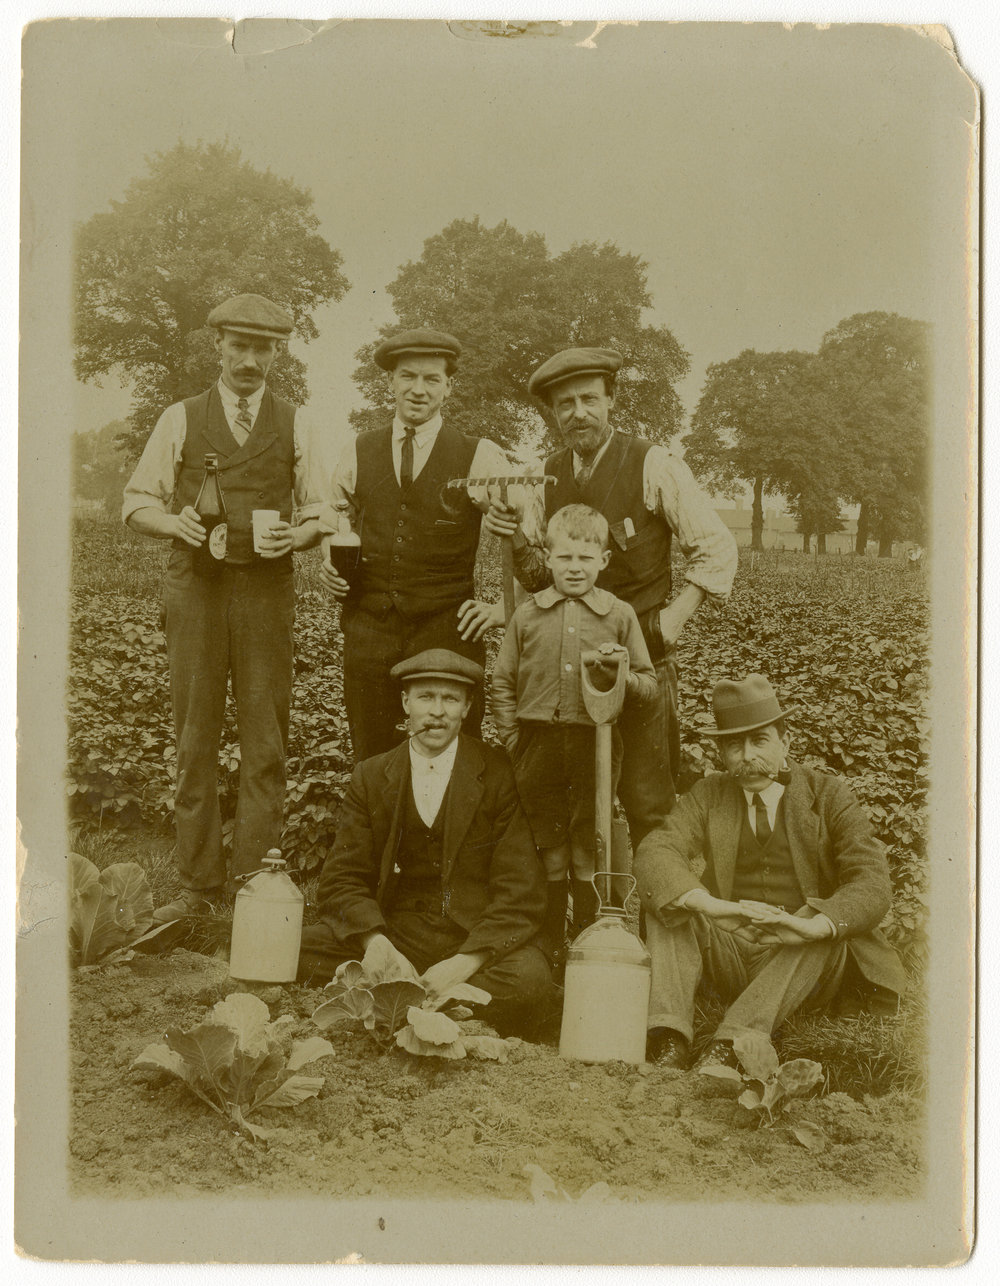 Kegs of beer and garden tools in hand, five men and a young boy pose in plot of growing vegetables – about 1918